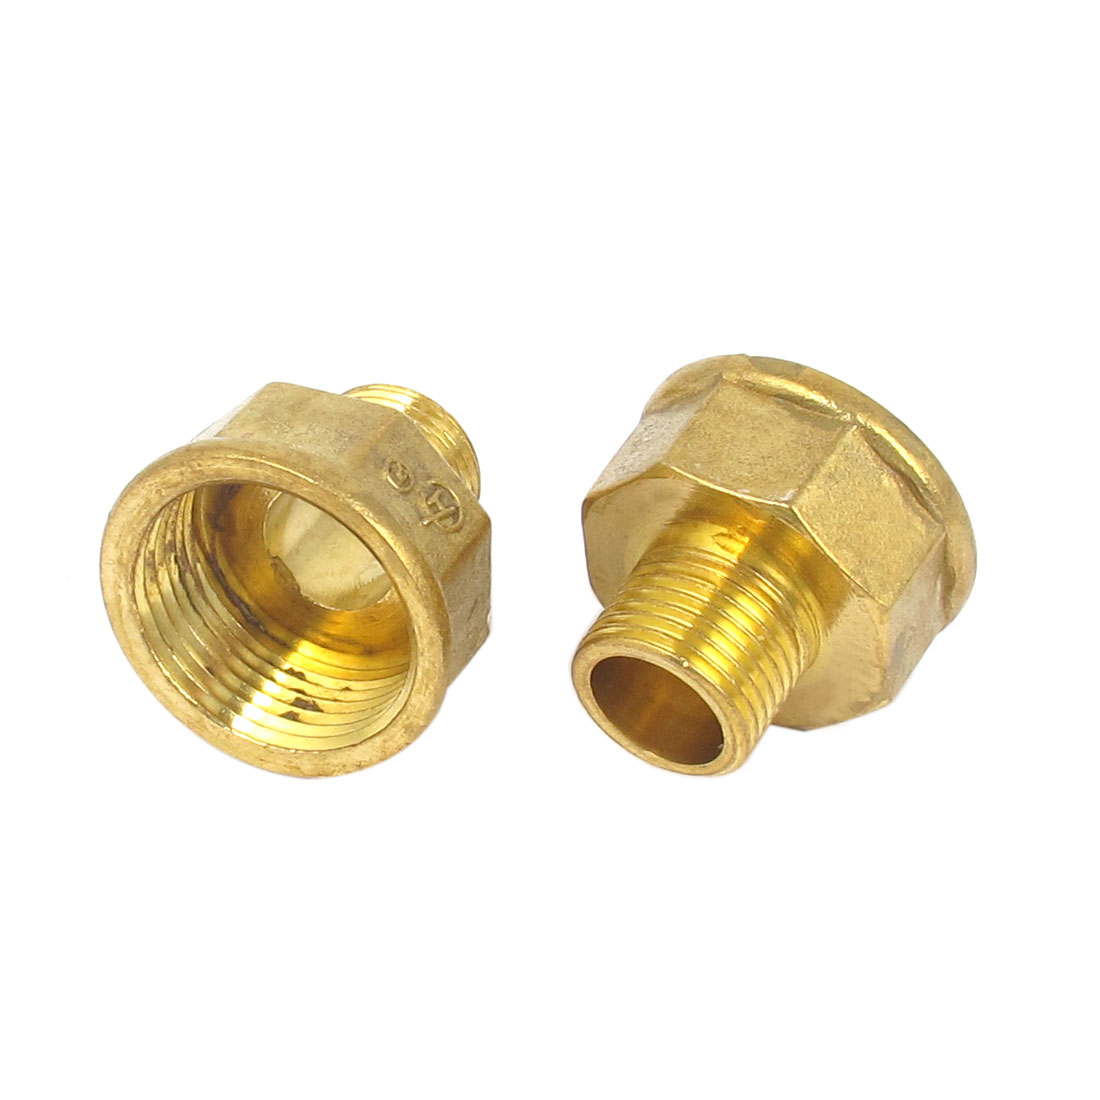 2pcs 1BSP to 1/2BSP M/F Threaded Brass Air Pipe Fittings Reducer Bushing Adapter Gold Tone